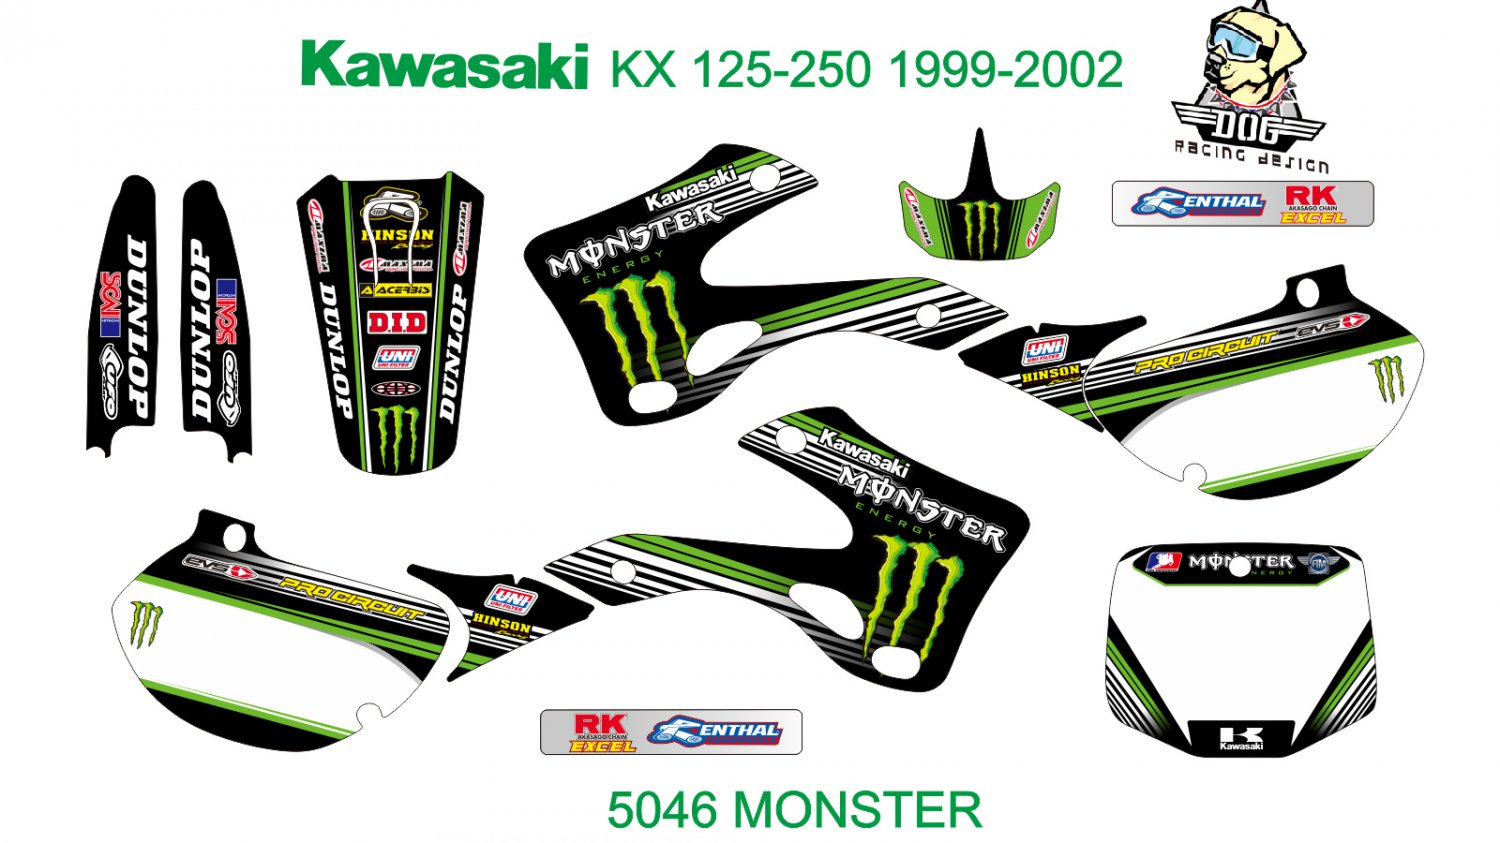 KAWASAKI KX 125-250 1999-2002 GRAPHIC DECAL KIT CODE.5046